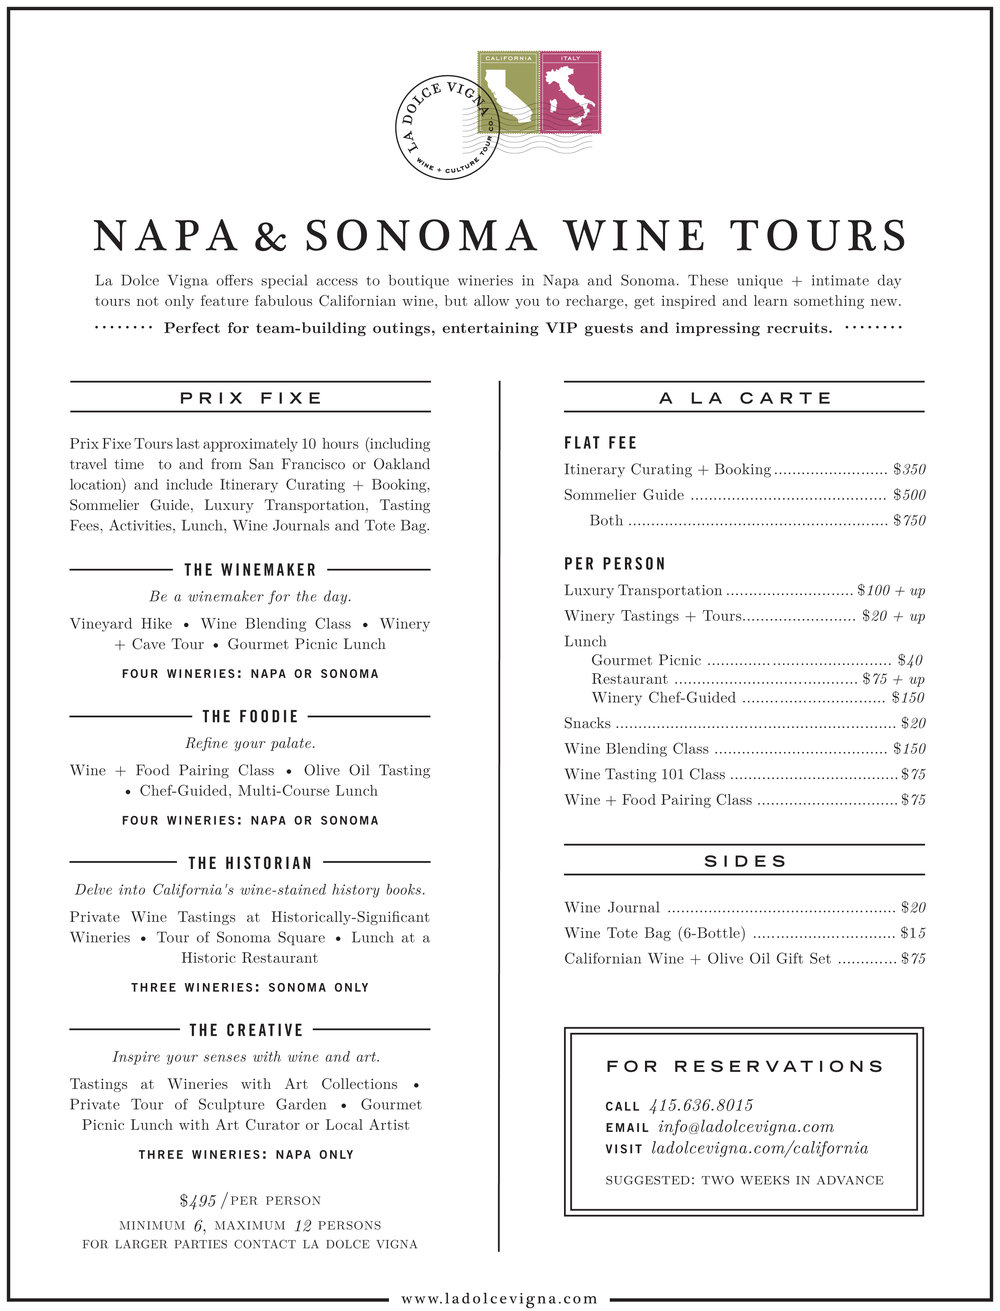 LDV_menu_corporate-wine-tour-napa-sonoma.jpg